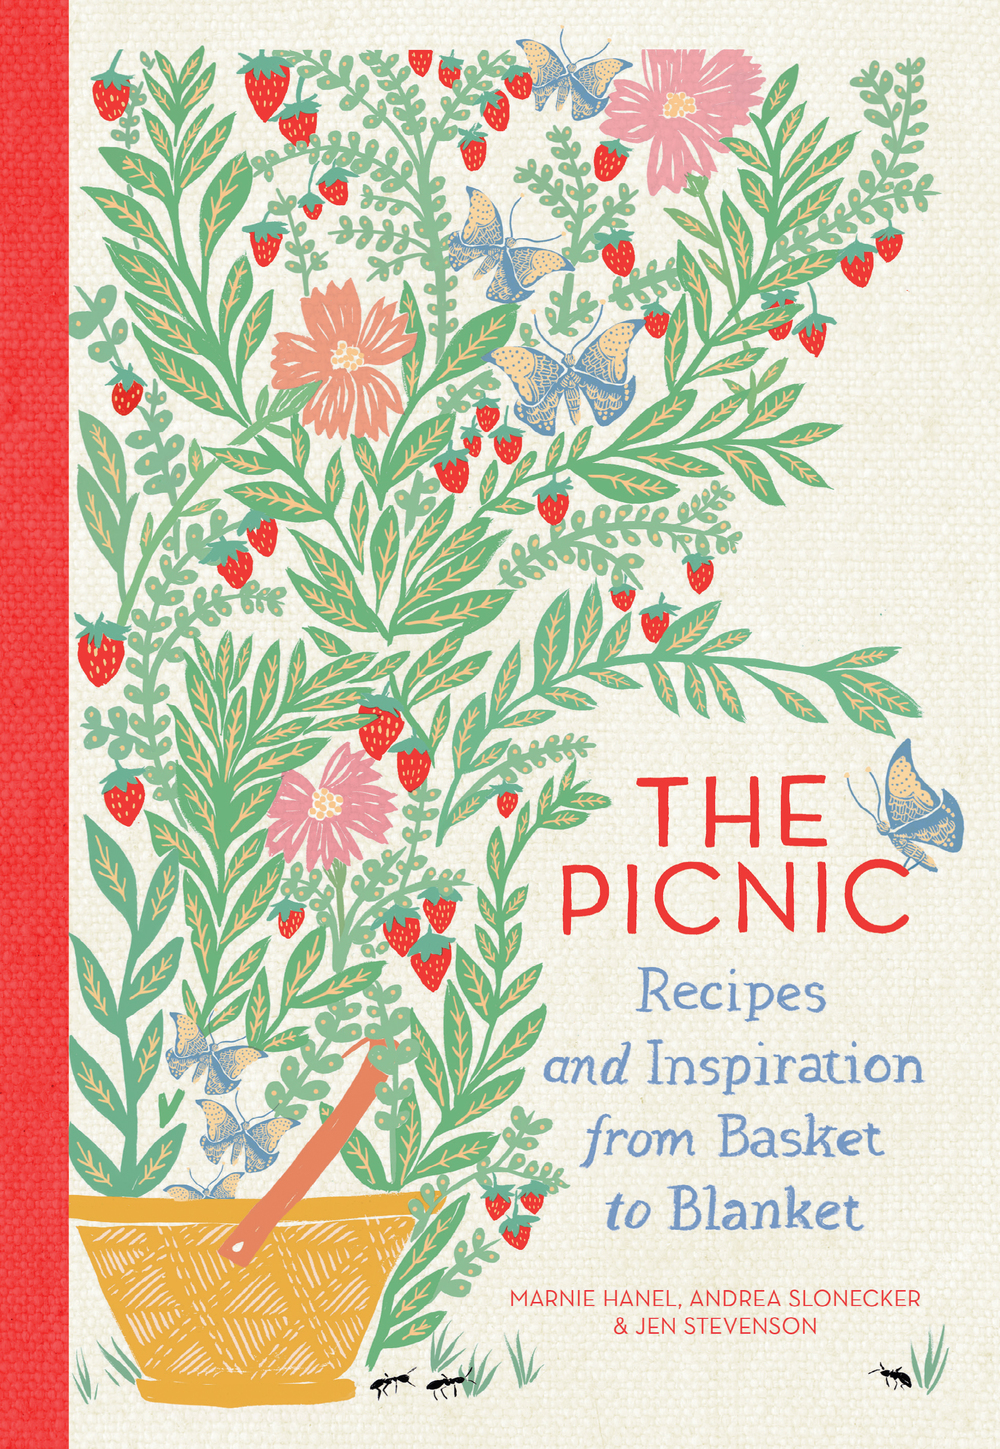 The Picnic by Marnie Hanel, Andrea Slonecker, and Jen Stevenson (Artisan Books). Copyright (c) 2015. Illustrations by Emily Isabella.